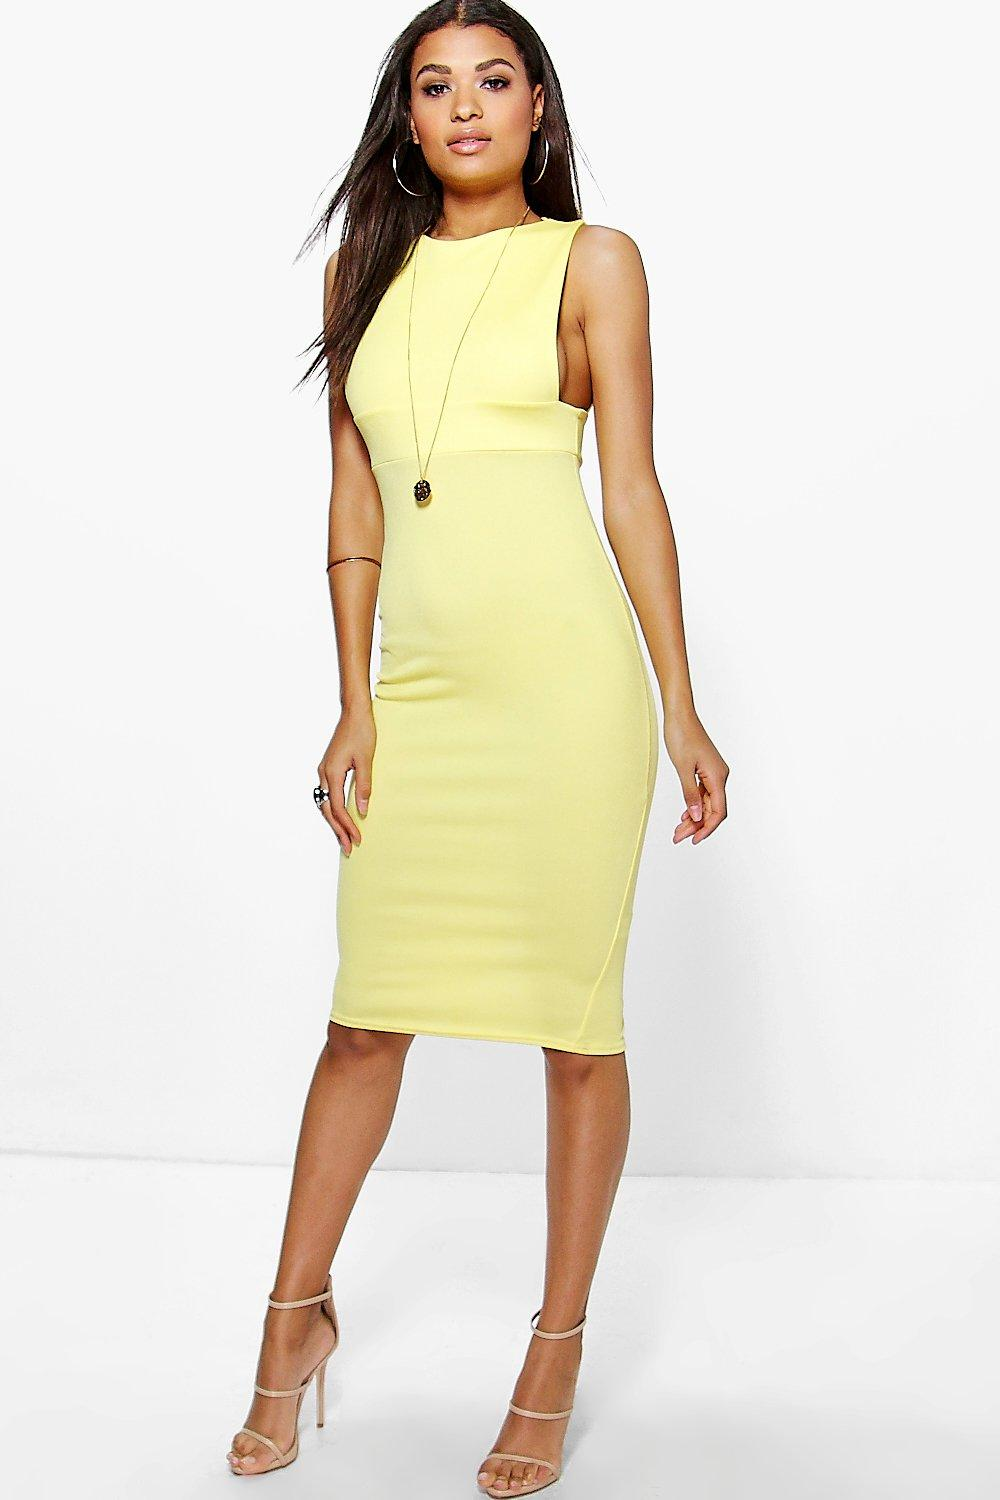 Low Cut Side Midi Bodycon Dress - yellow